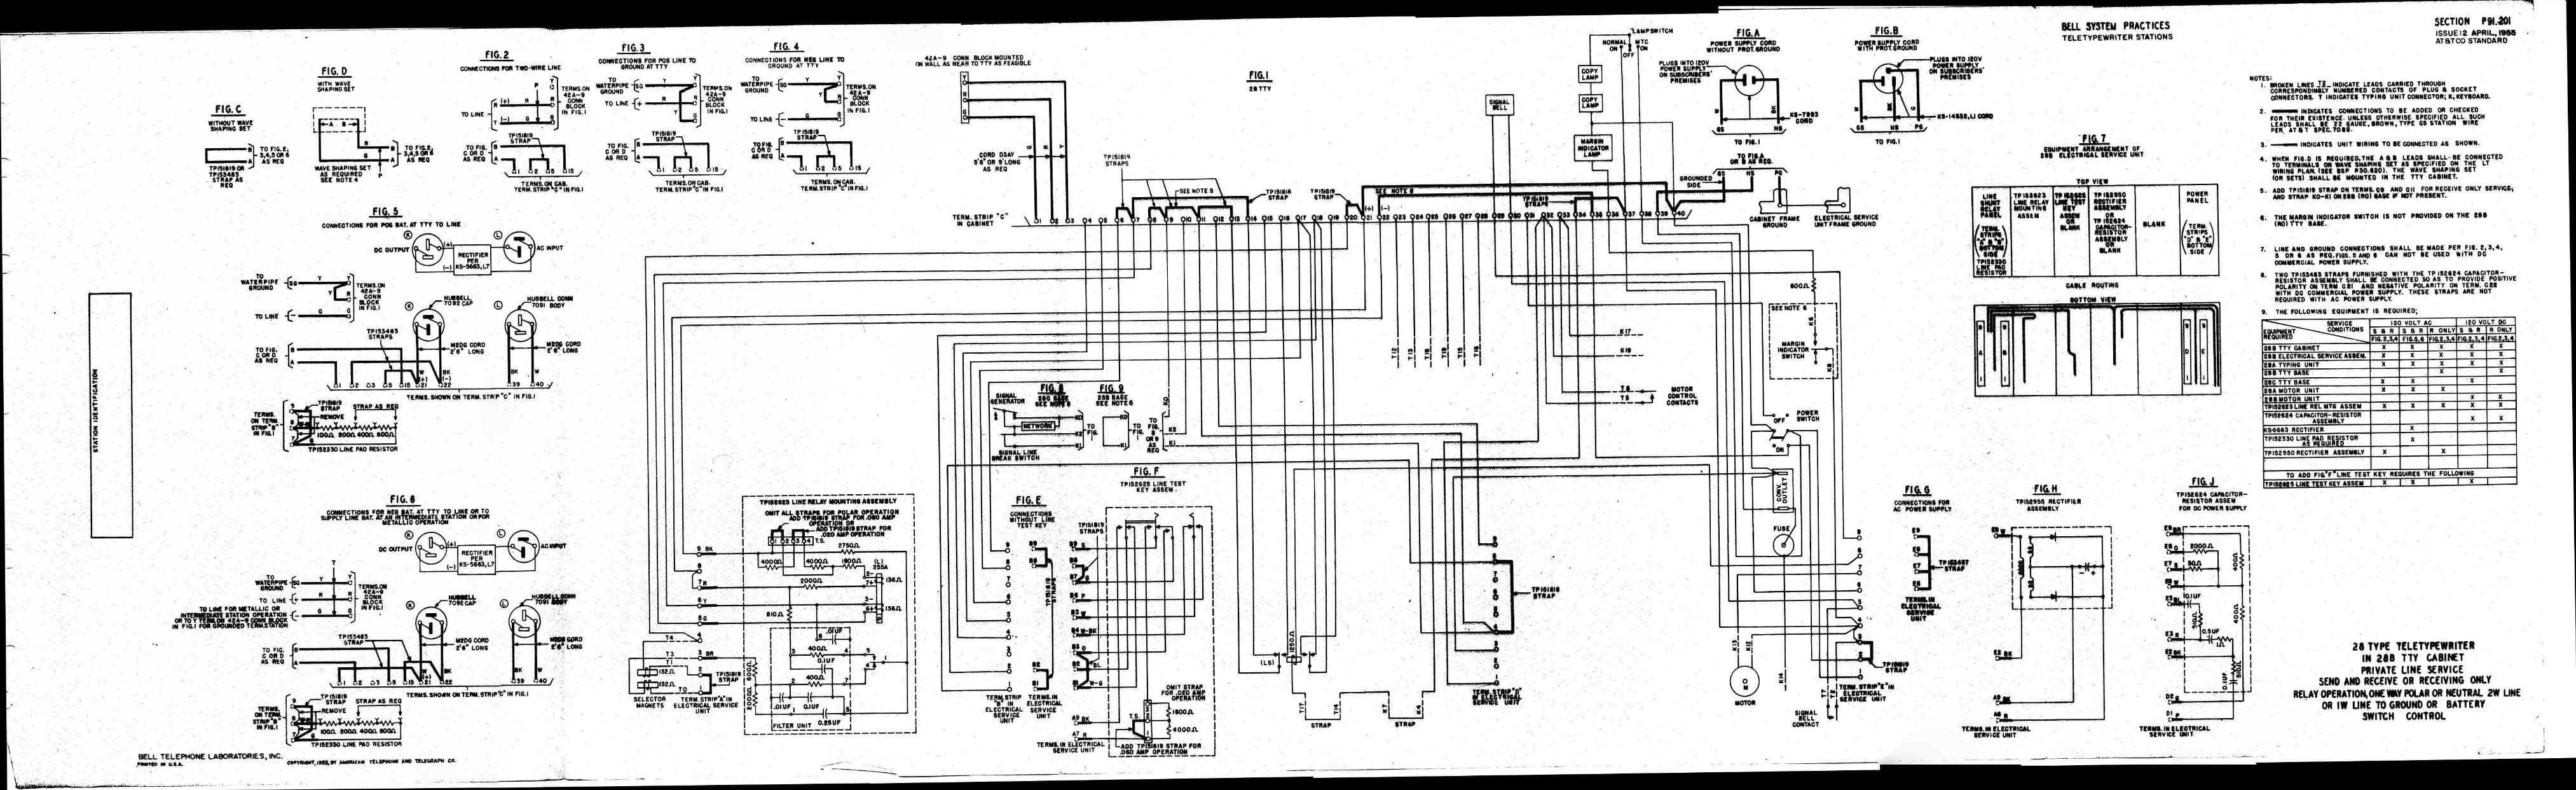 Teletype Wiring Diagrams And Schematics Magnetic Strip Diagram P91201 Link